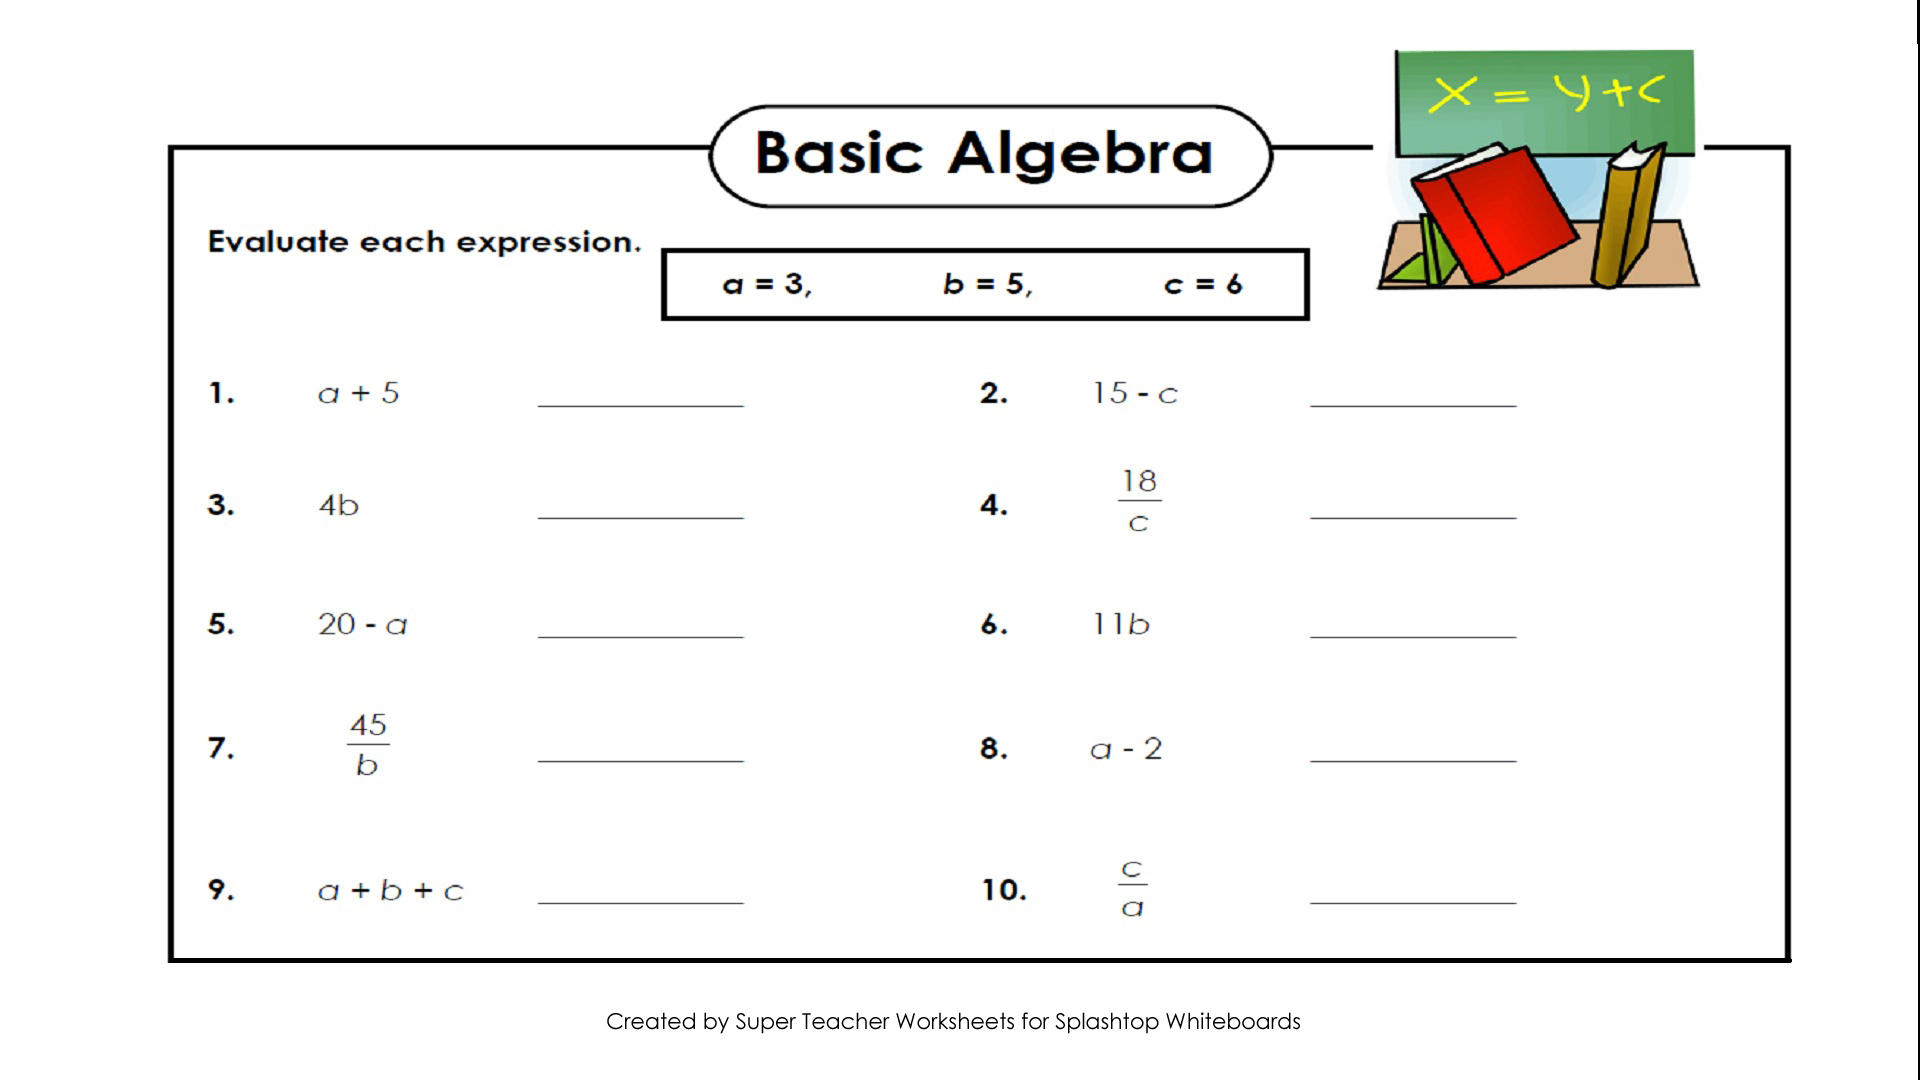 Worksheets Super Teacher Worksheets 3rd Grade splashtop whiteboard background graphics algebra basic